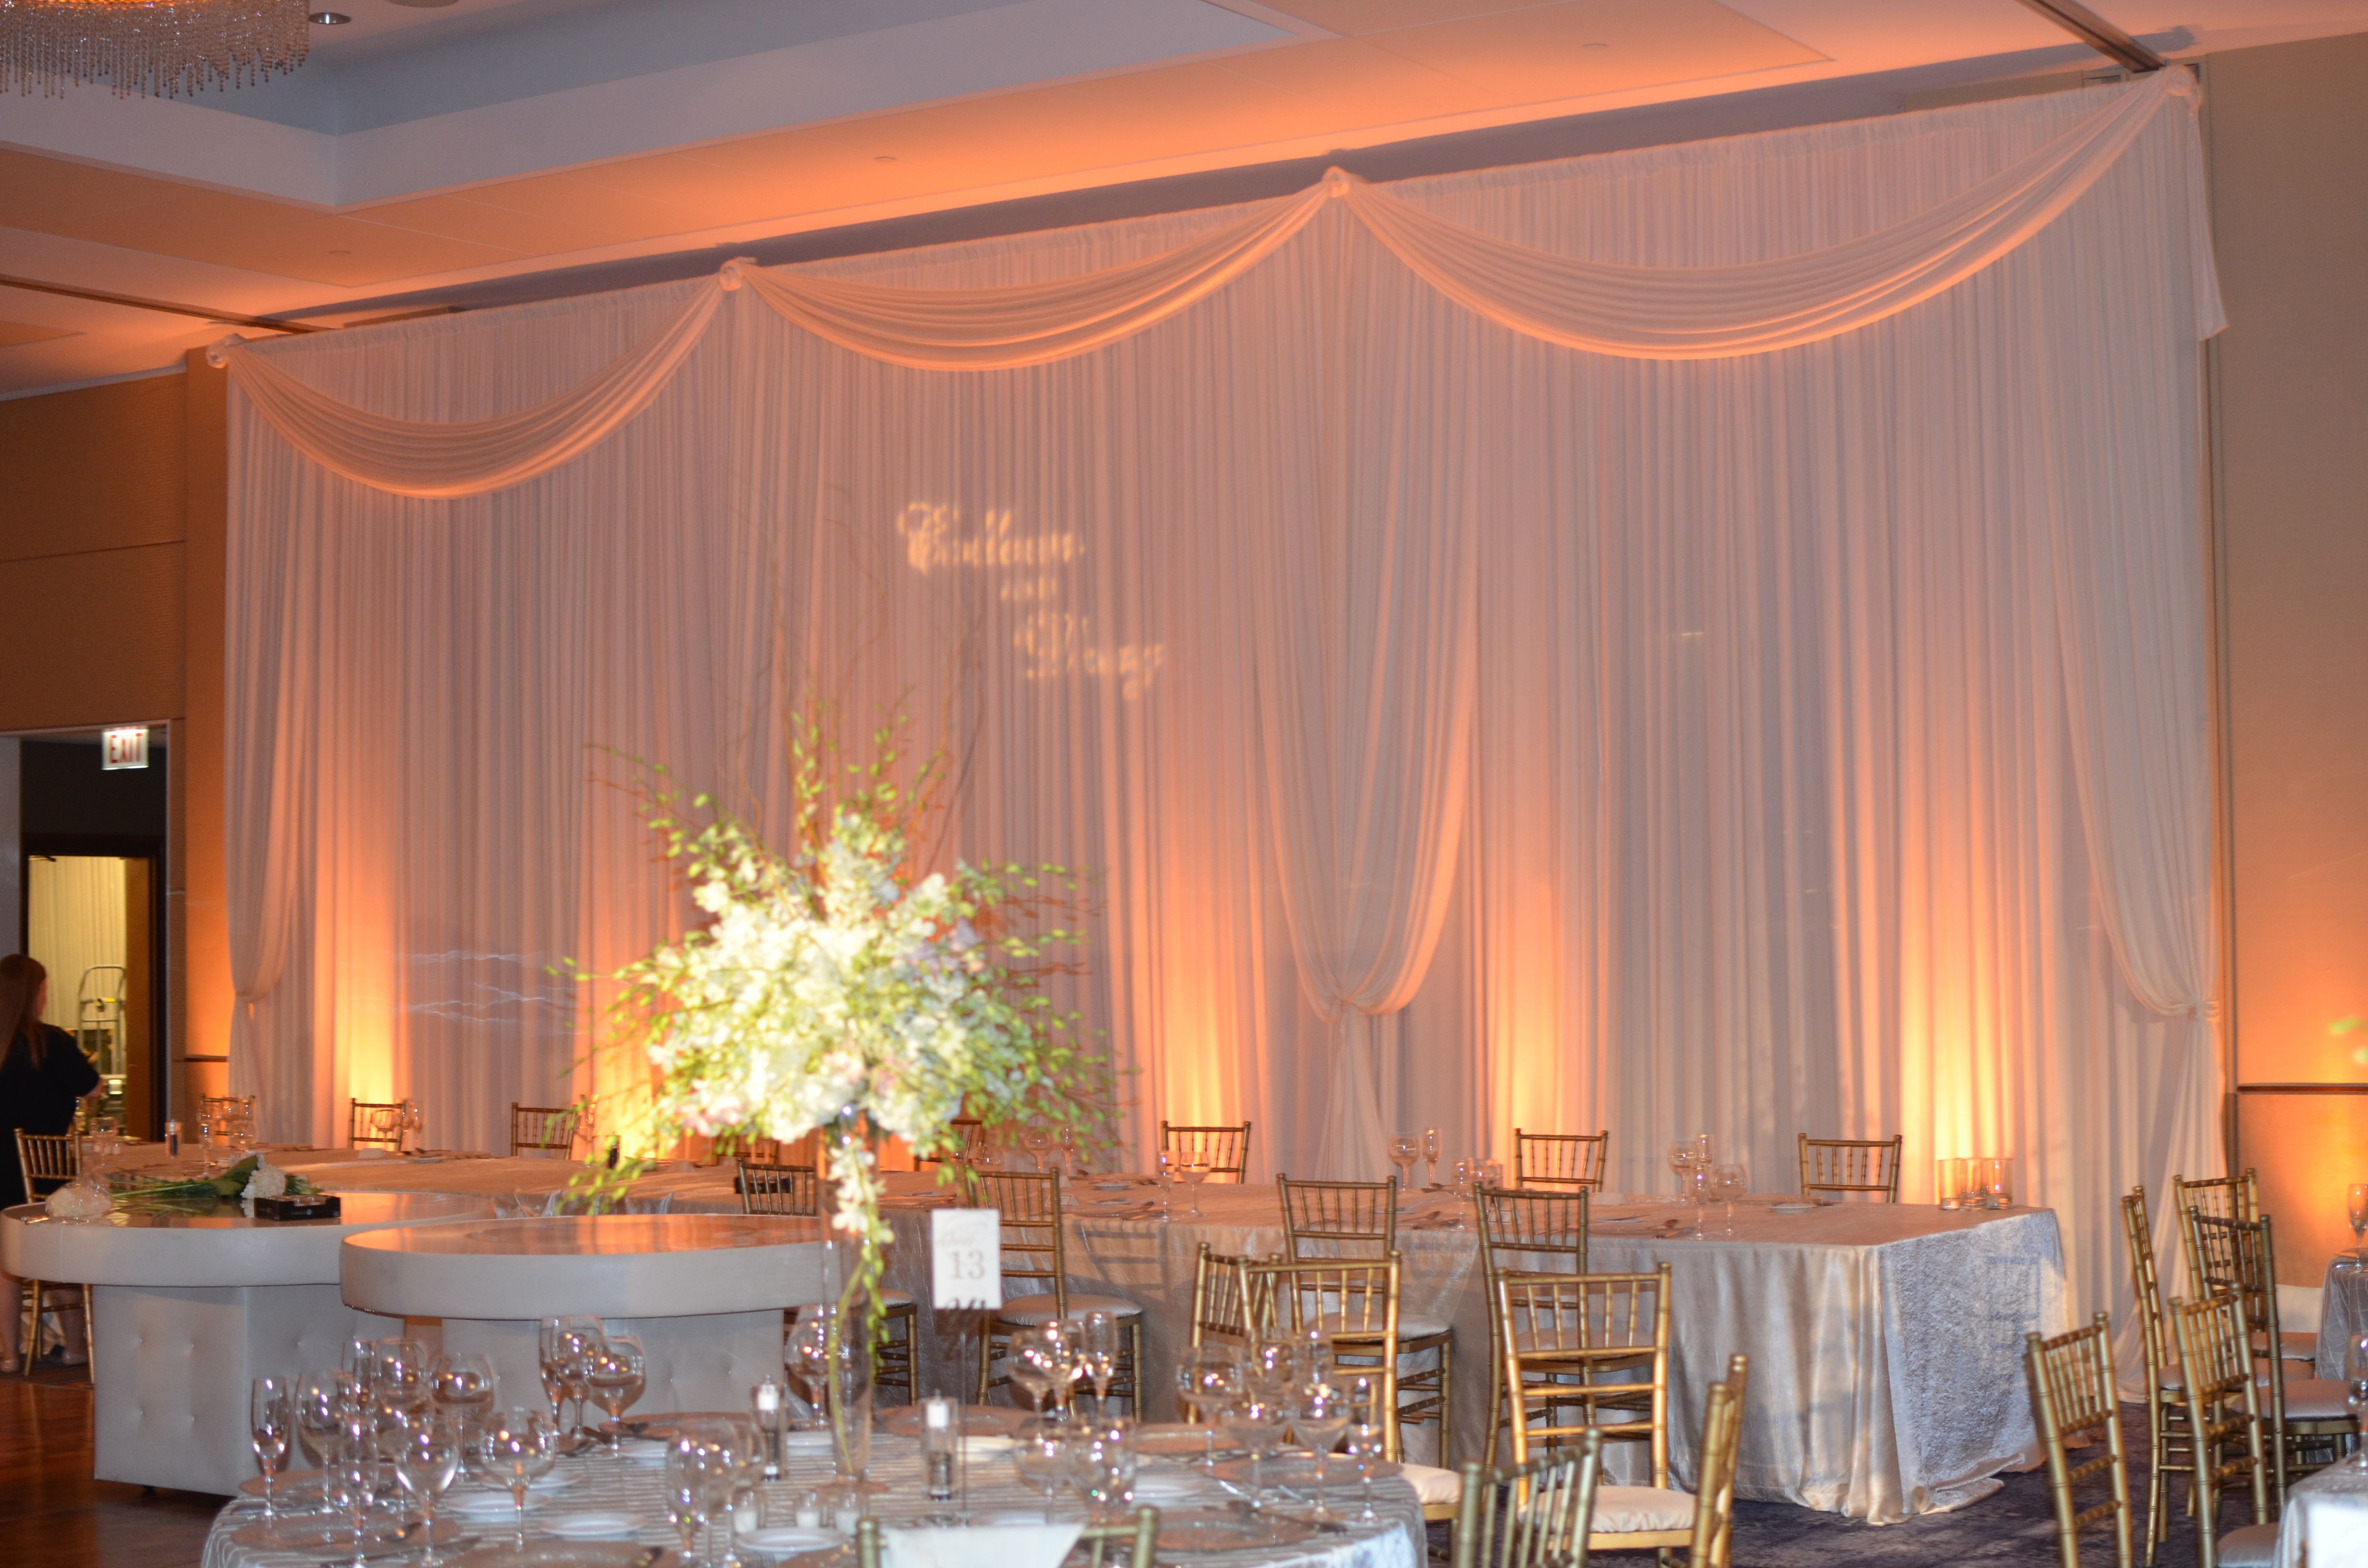 is fabric love for of d cor poles drapes or draping looks and used items most the any one adjustable party dsc wedding we drape rentals celebrations on versatile be pipe kind can positioned